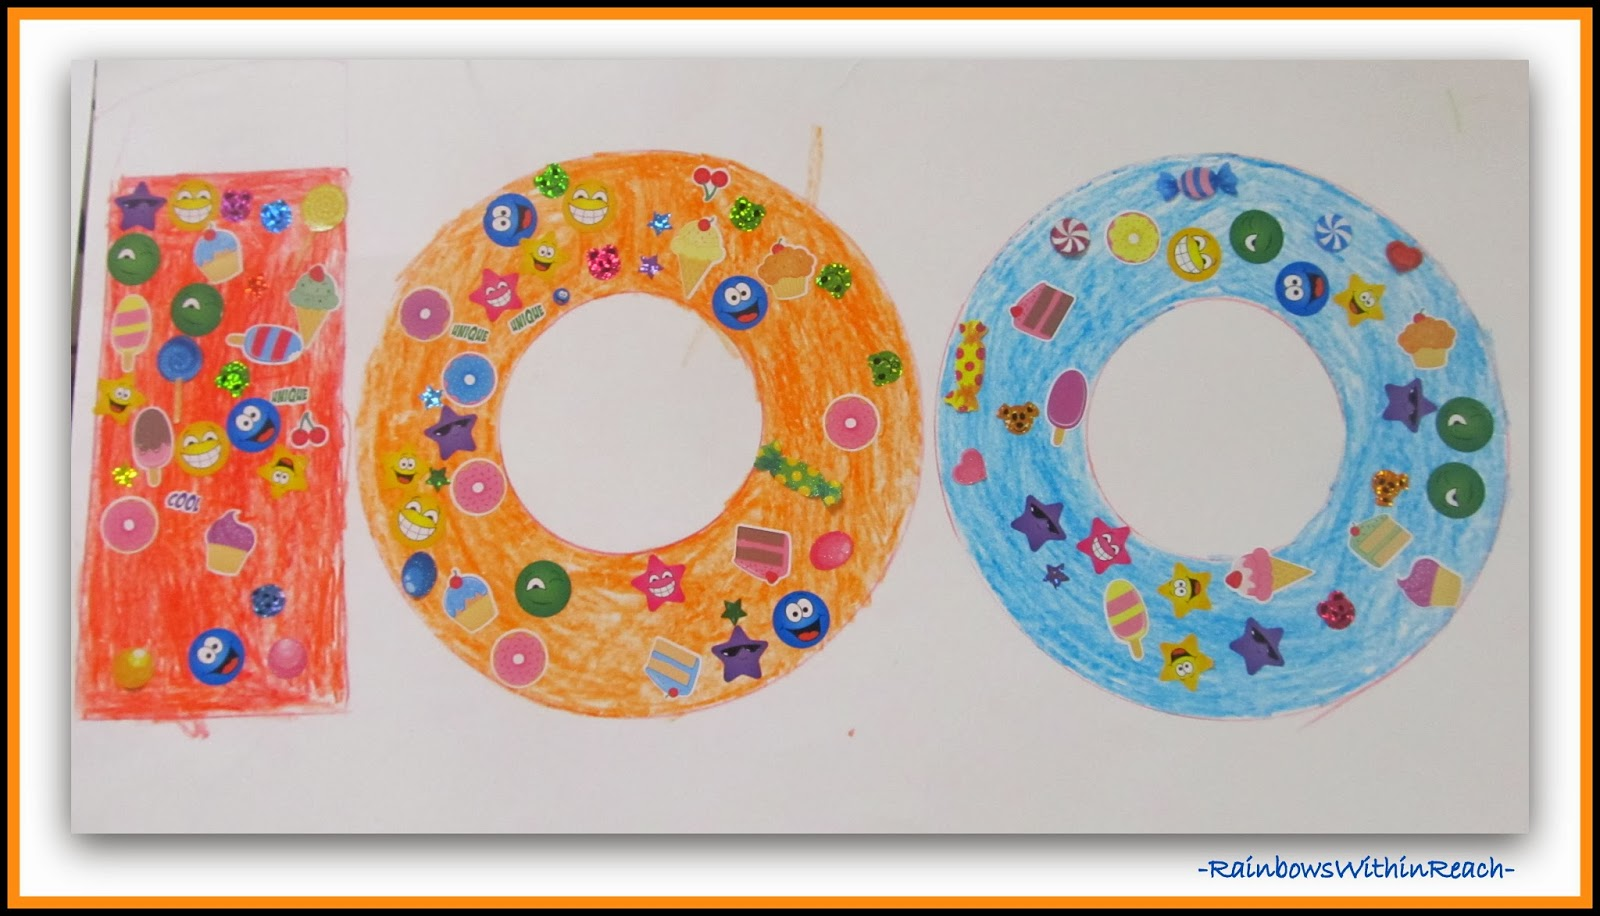 Kindergarten 100 Days Homework Project via RainbowsWithinReach